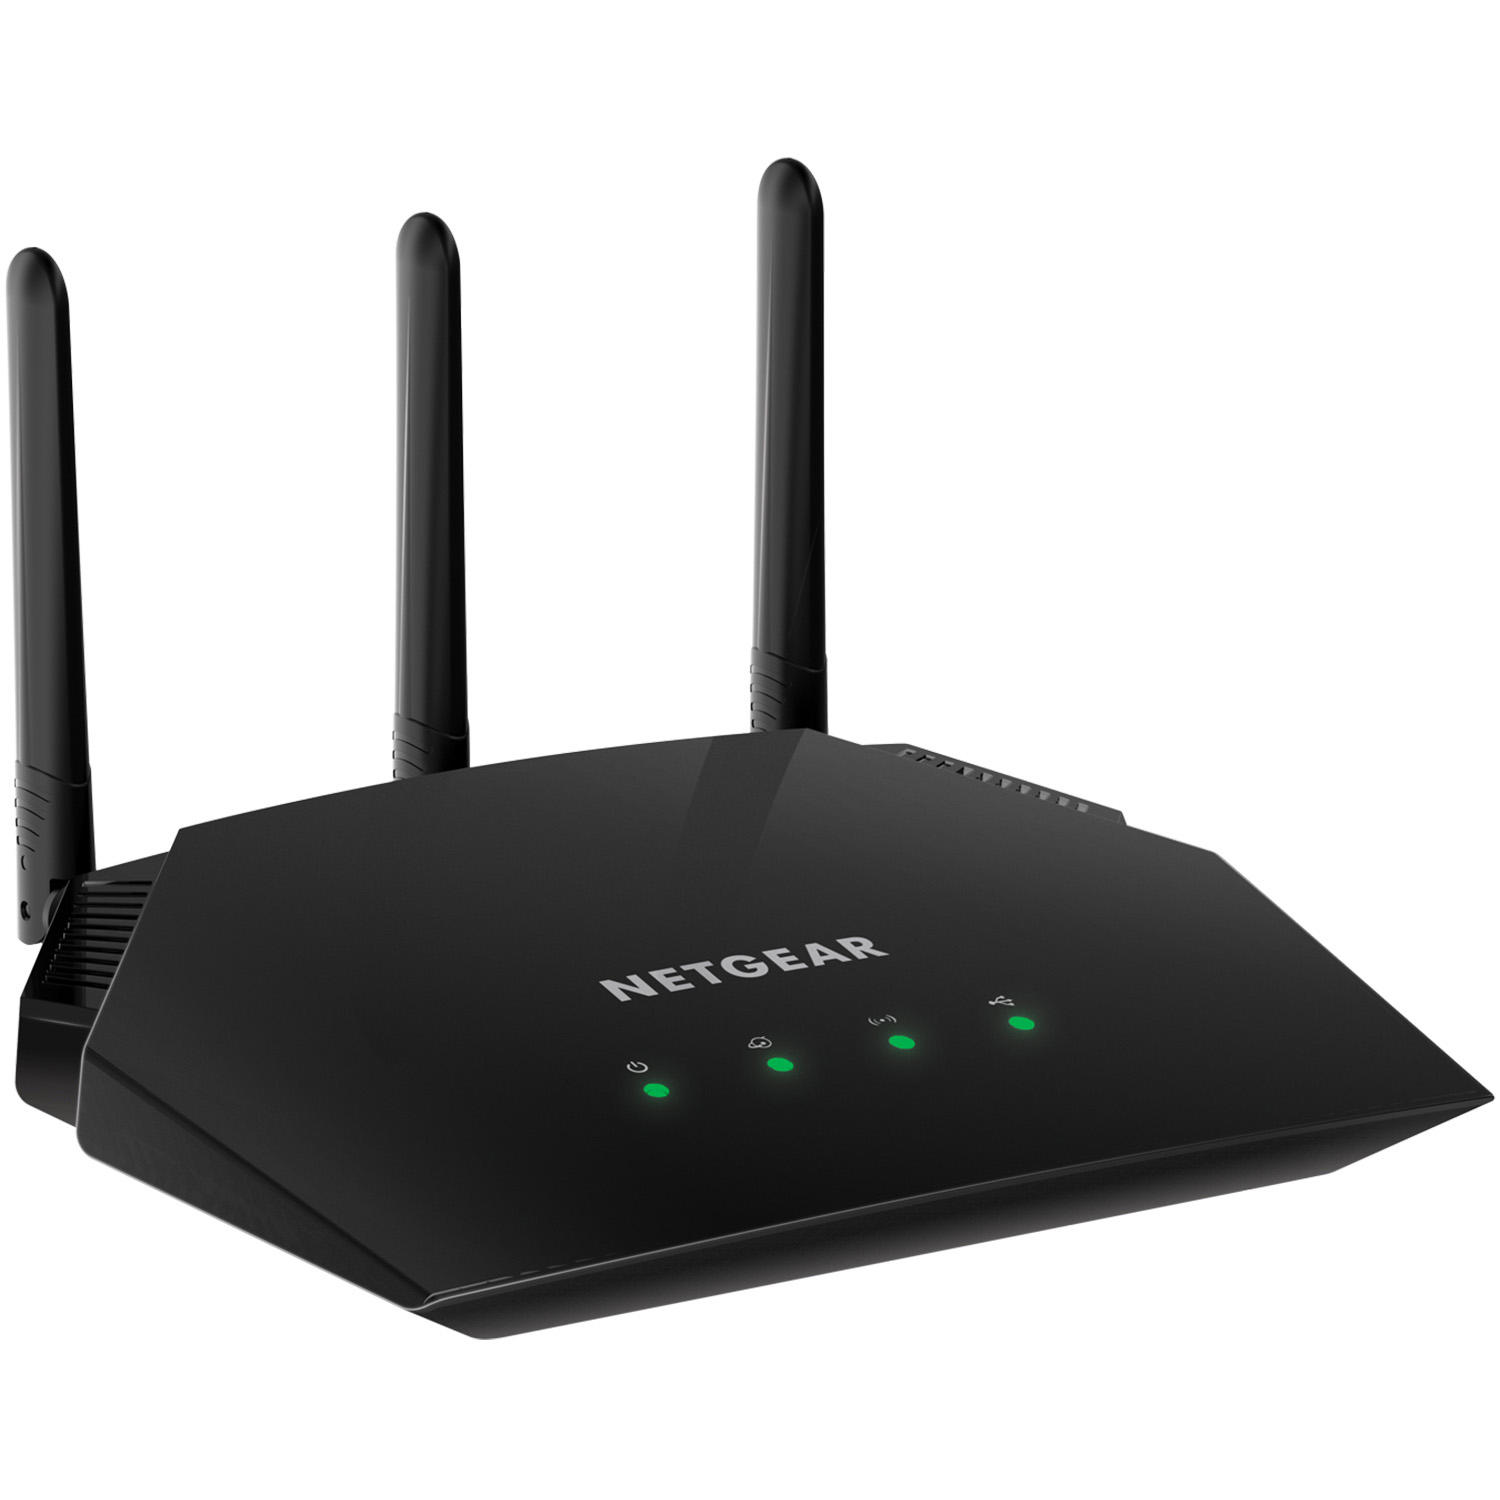 Netgear AC2000 Dual Band Gigabit Smart Wi-Fi Router